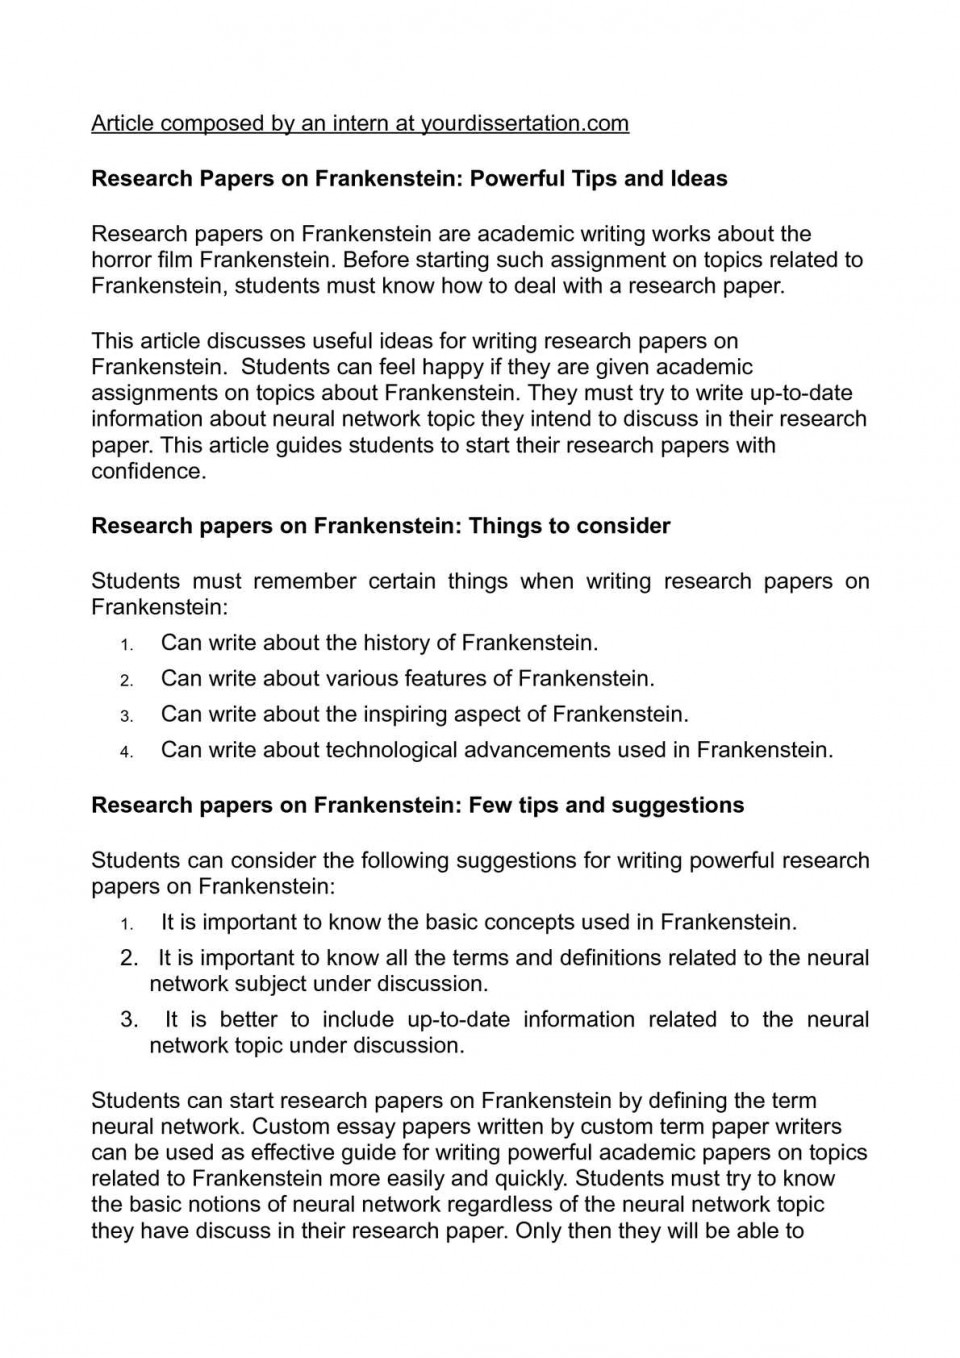 003 Research Paper P1 Papers Surprising Ideas Writing High School Topics Biology 960